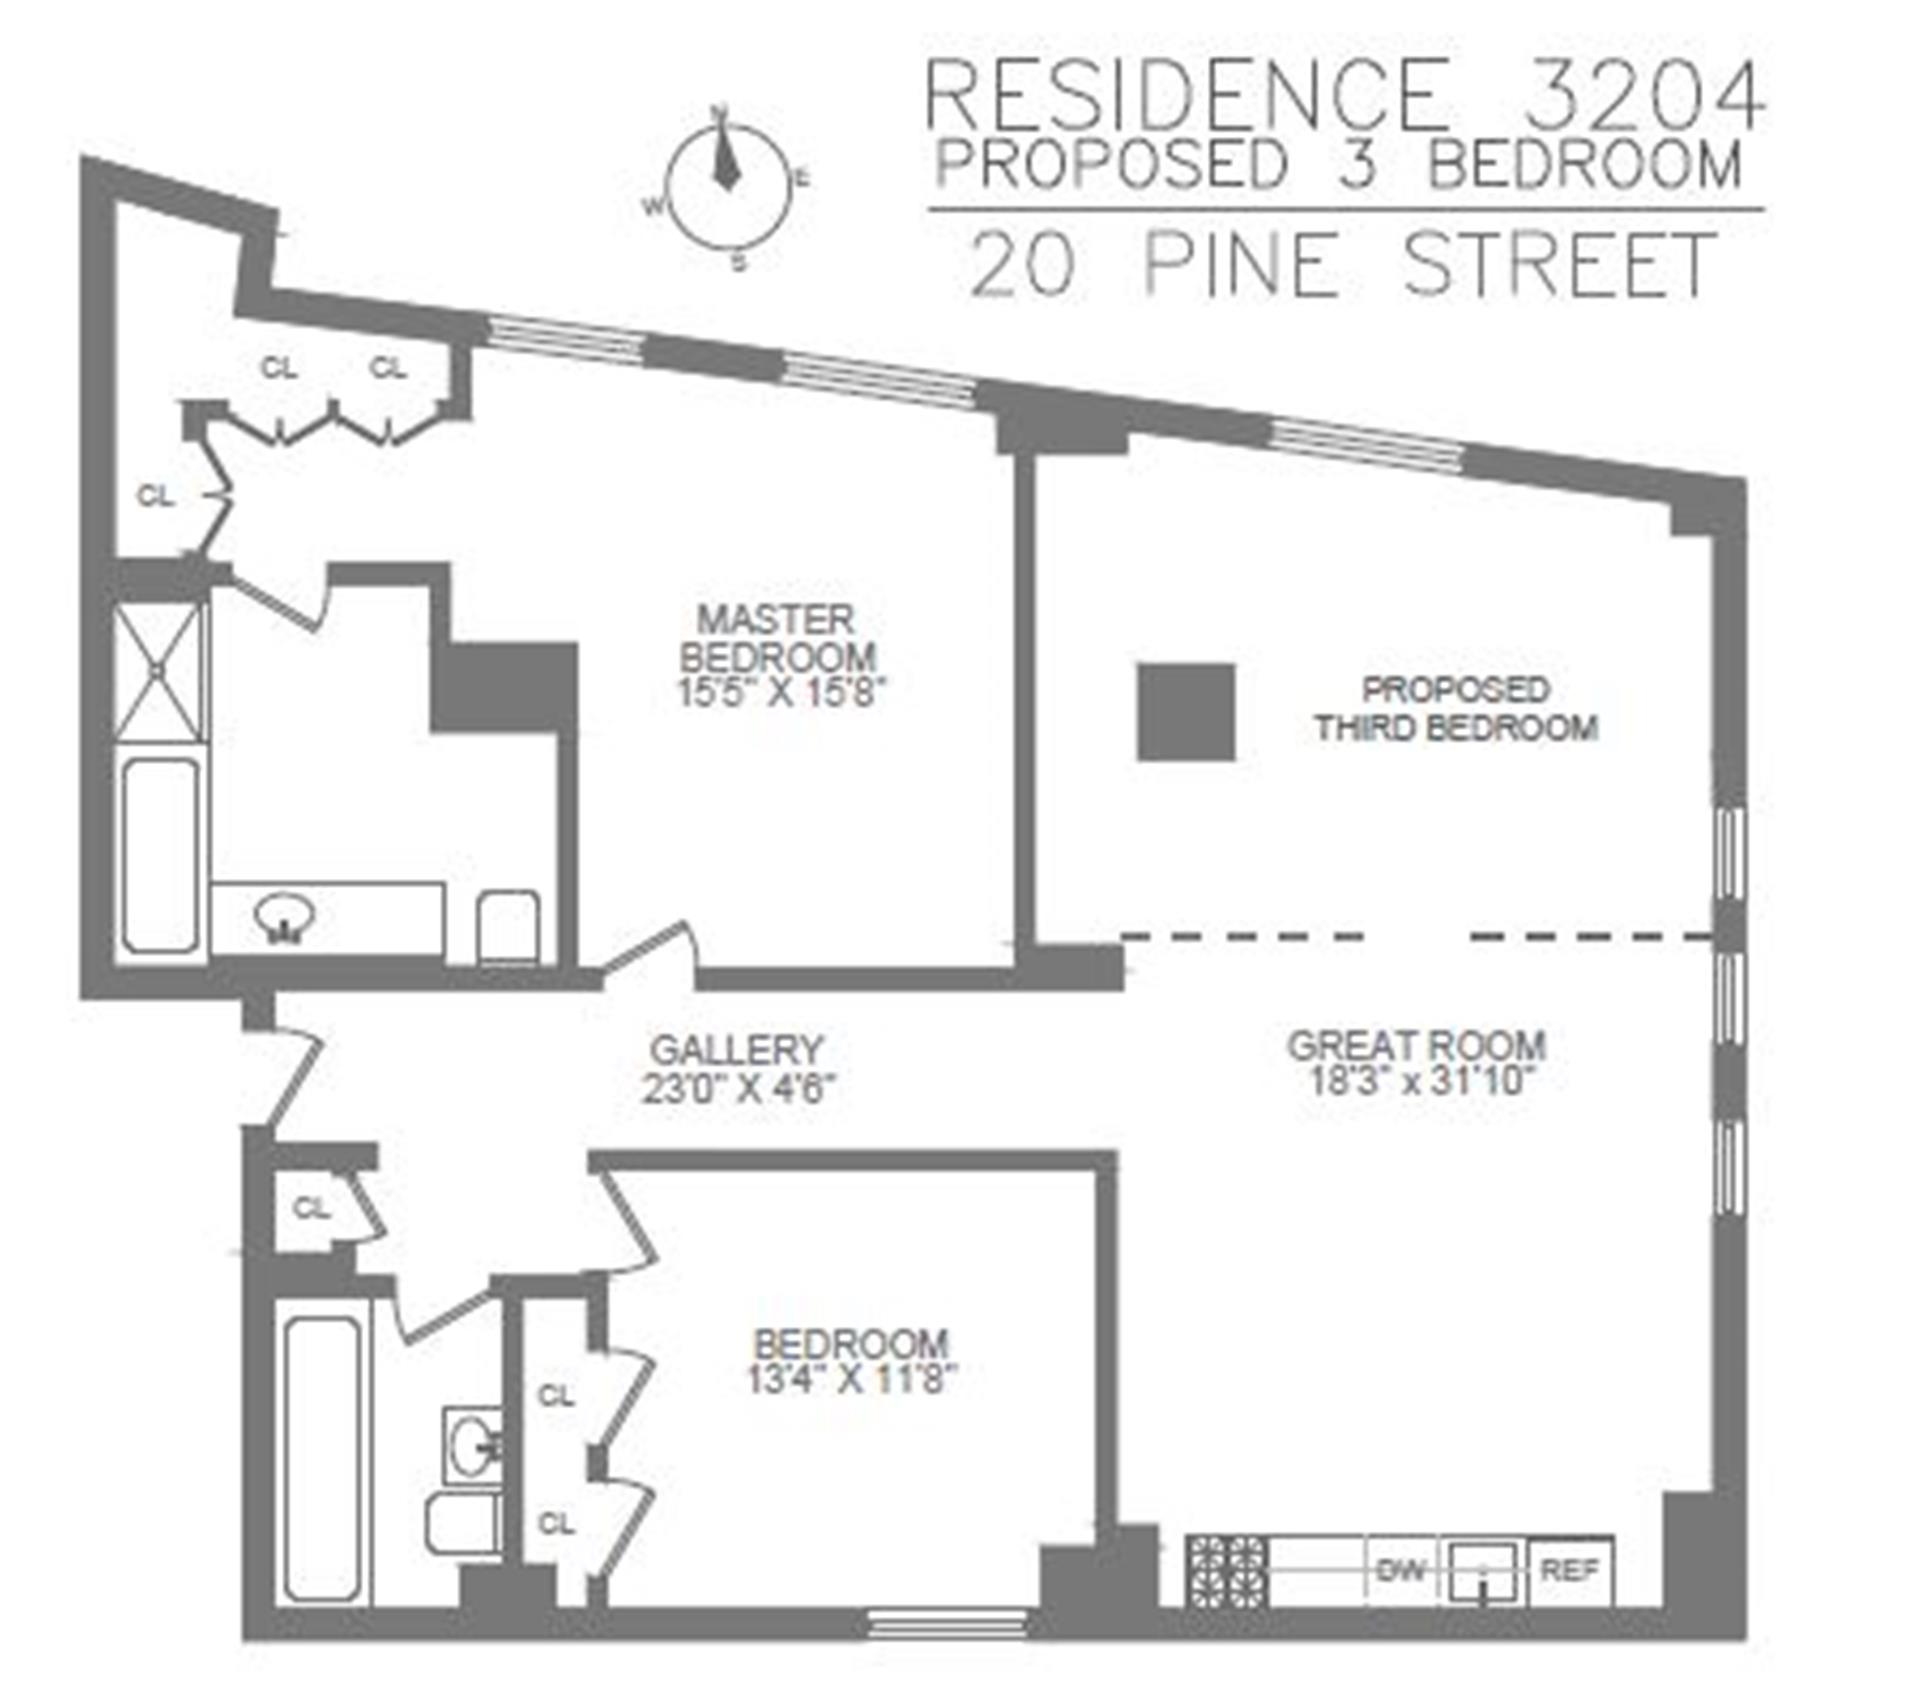 Floor plan of 20 Pine - The Collection, 20 Pine St, 3204 - Financial District, New York